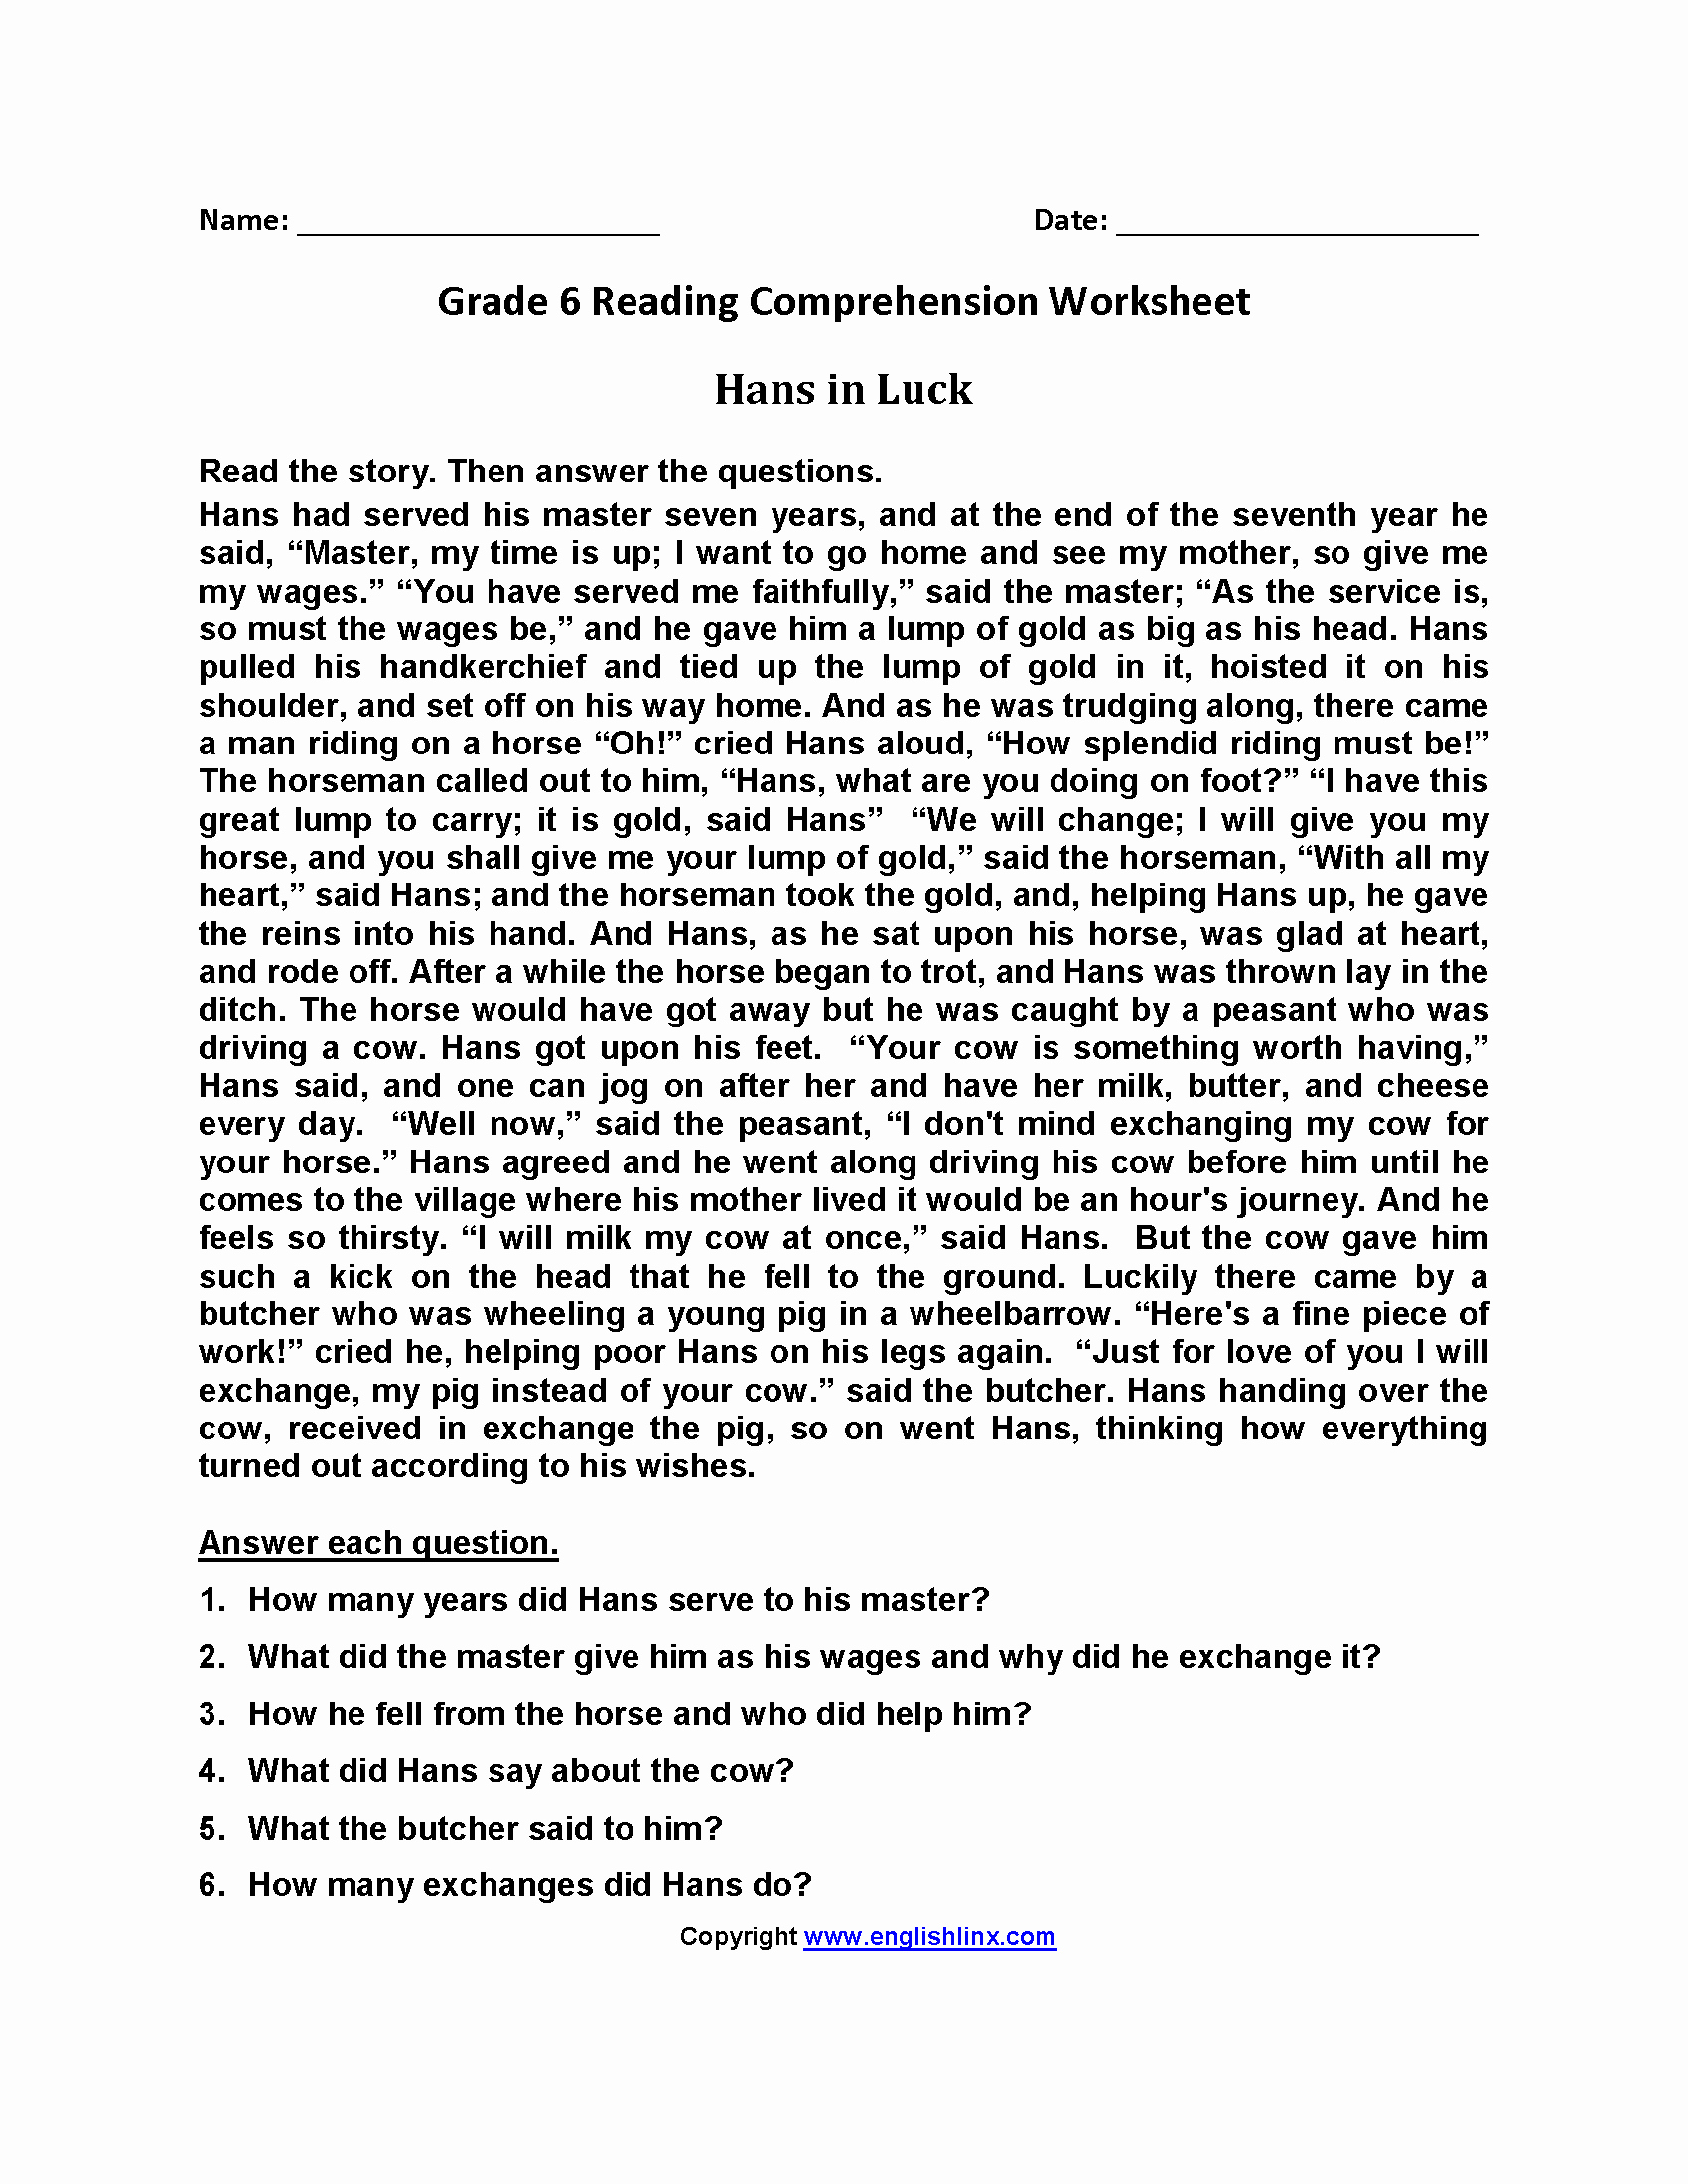 20 Free Printable Reading Comprehension Worksheets For 6Th Grade | Free Printable 6Th Grade Reading Worksheets